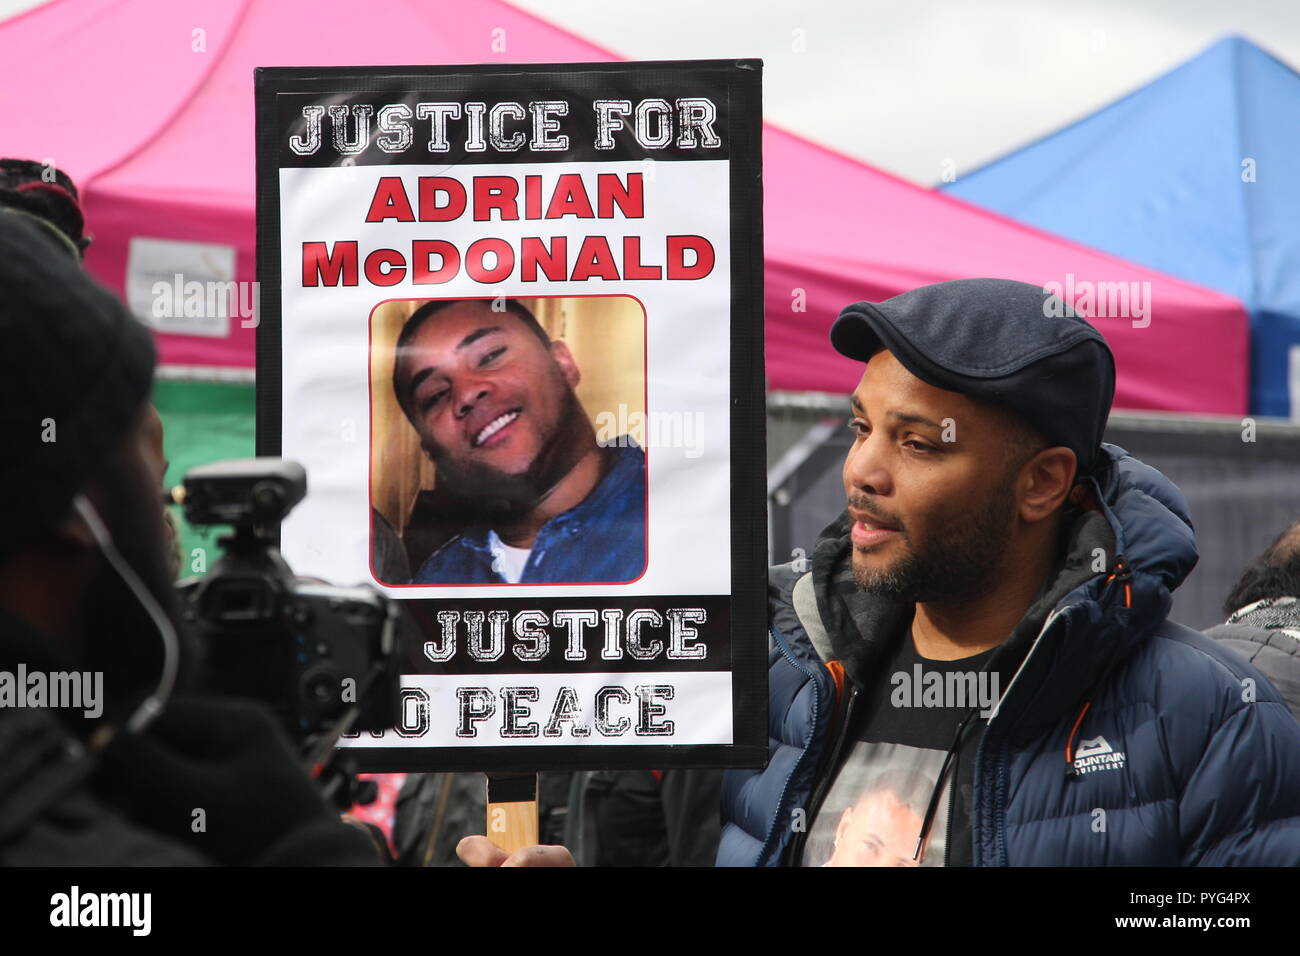 London, UK, 27th October, 2018. Friends, family and supporters campaigning for justice for people who died in custody, or while being arrested  take part In the 20th annual march organised by the United Families and Friends Campaign. Officers were found guilty of misconduct following the death of Adrian McDonald in 2014. The march  goes from Trafalger Square to Downing Street, where a petition is handed in. Roland Ravenhill/Alamy Live News. - Stock Image